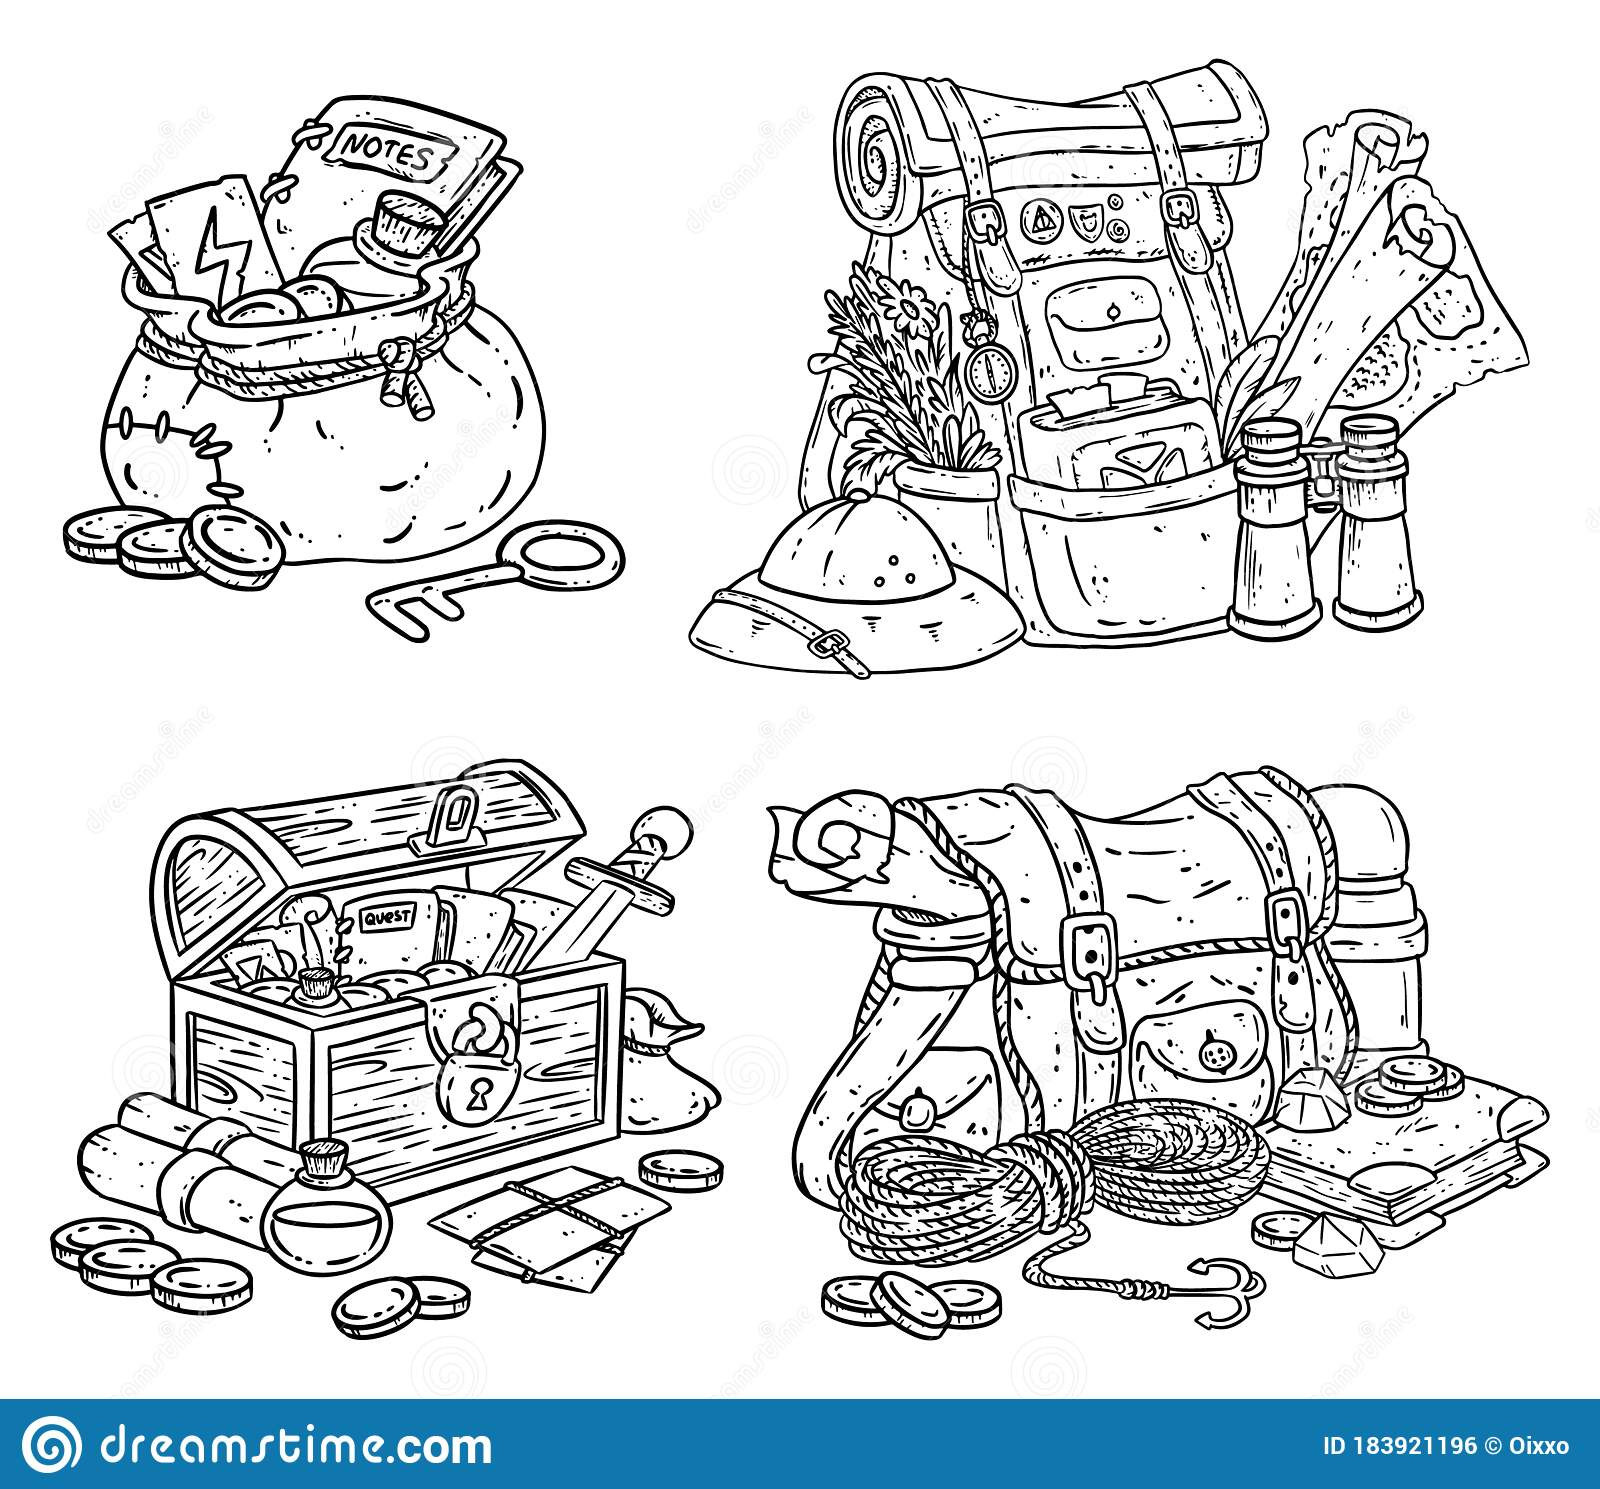 Money Coloring Pages Stock Illustrations 46 Money Coloring Pages Stock Illustrations Vectors Clipart Dreamstime